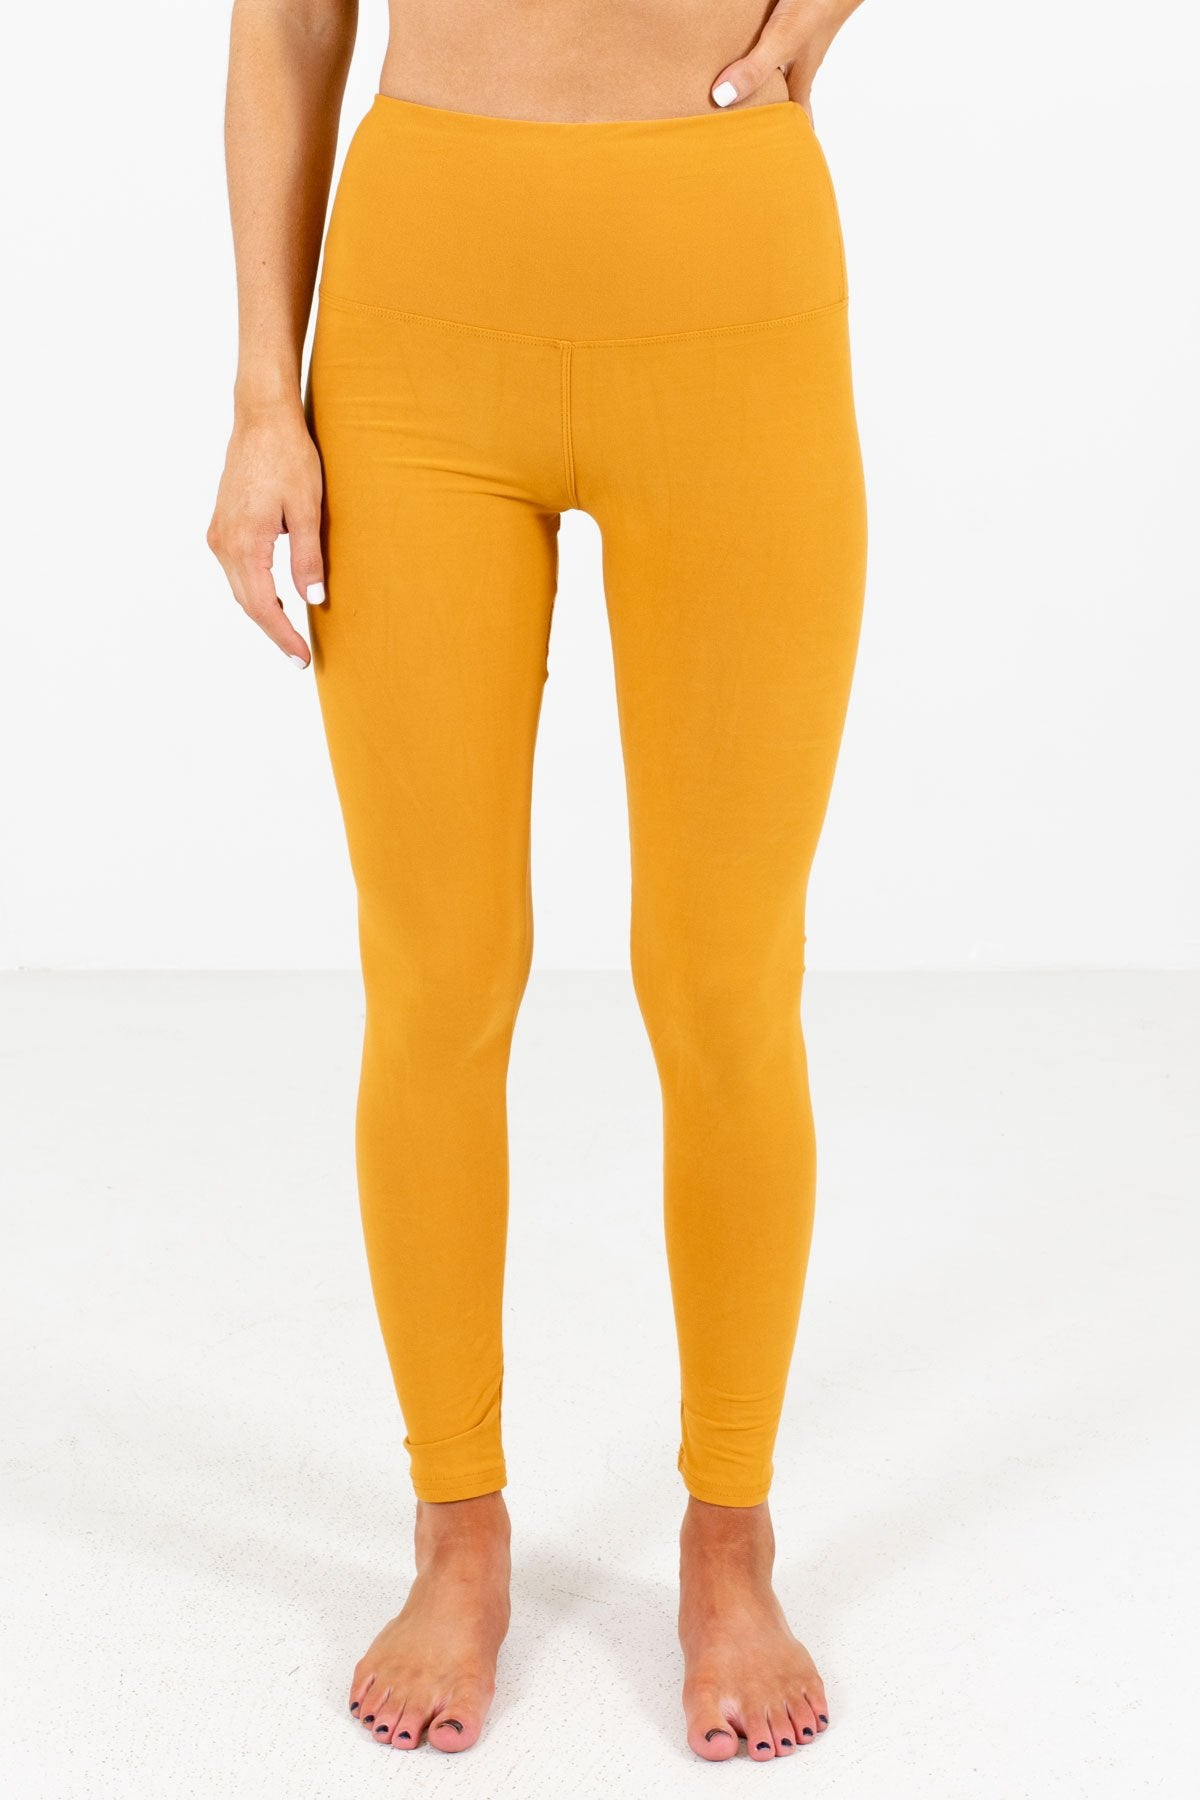 Mustard Yellow Cute Best Leggings for Winter Affordable Online Womens Boutique Women